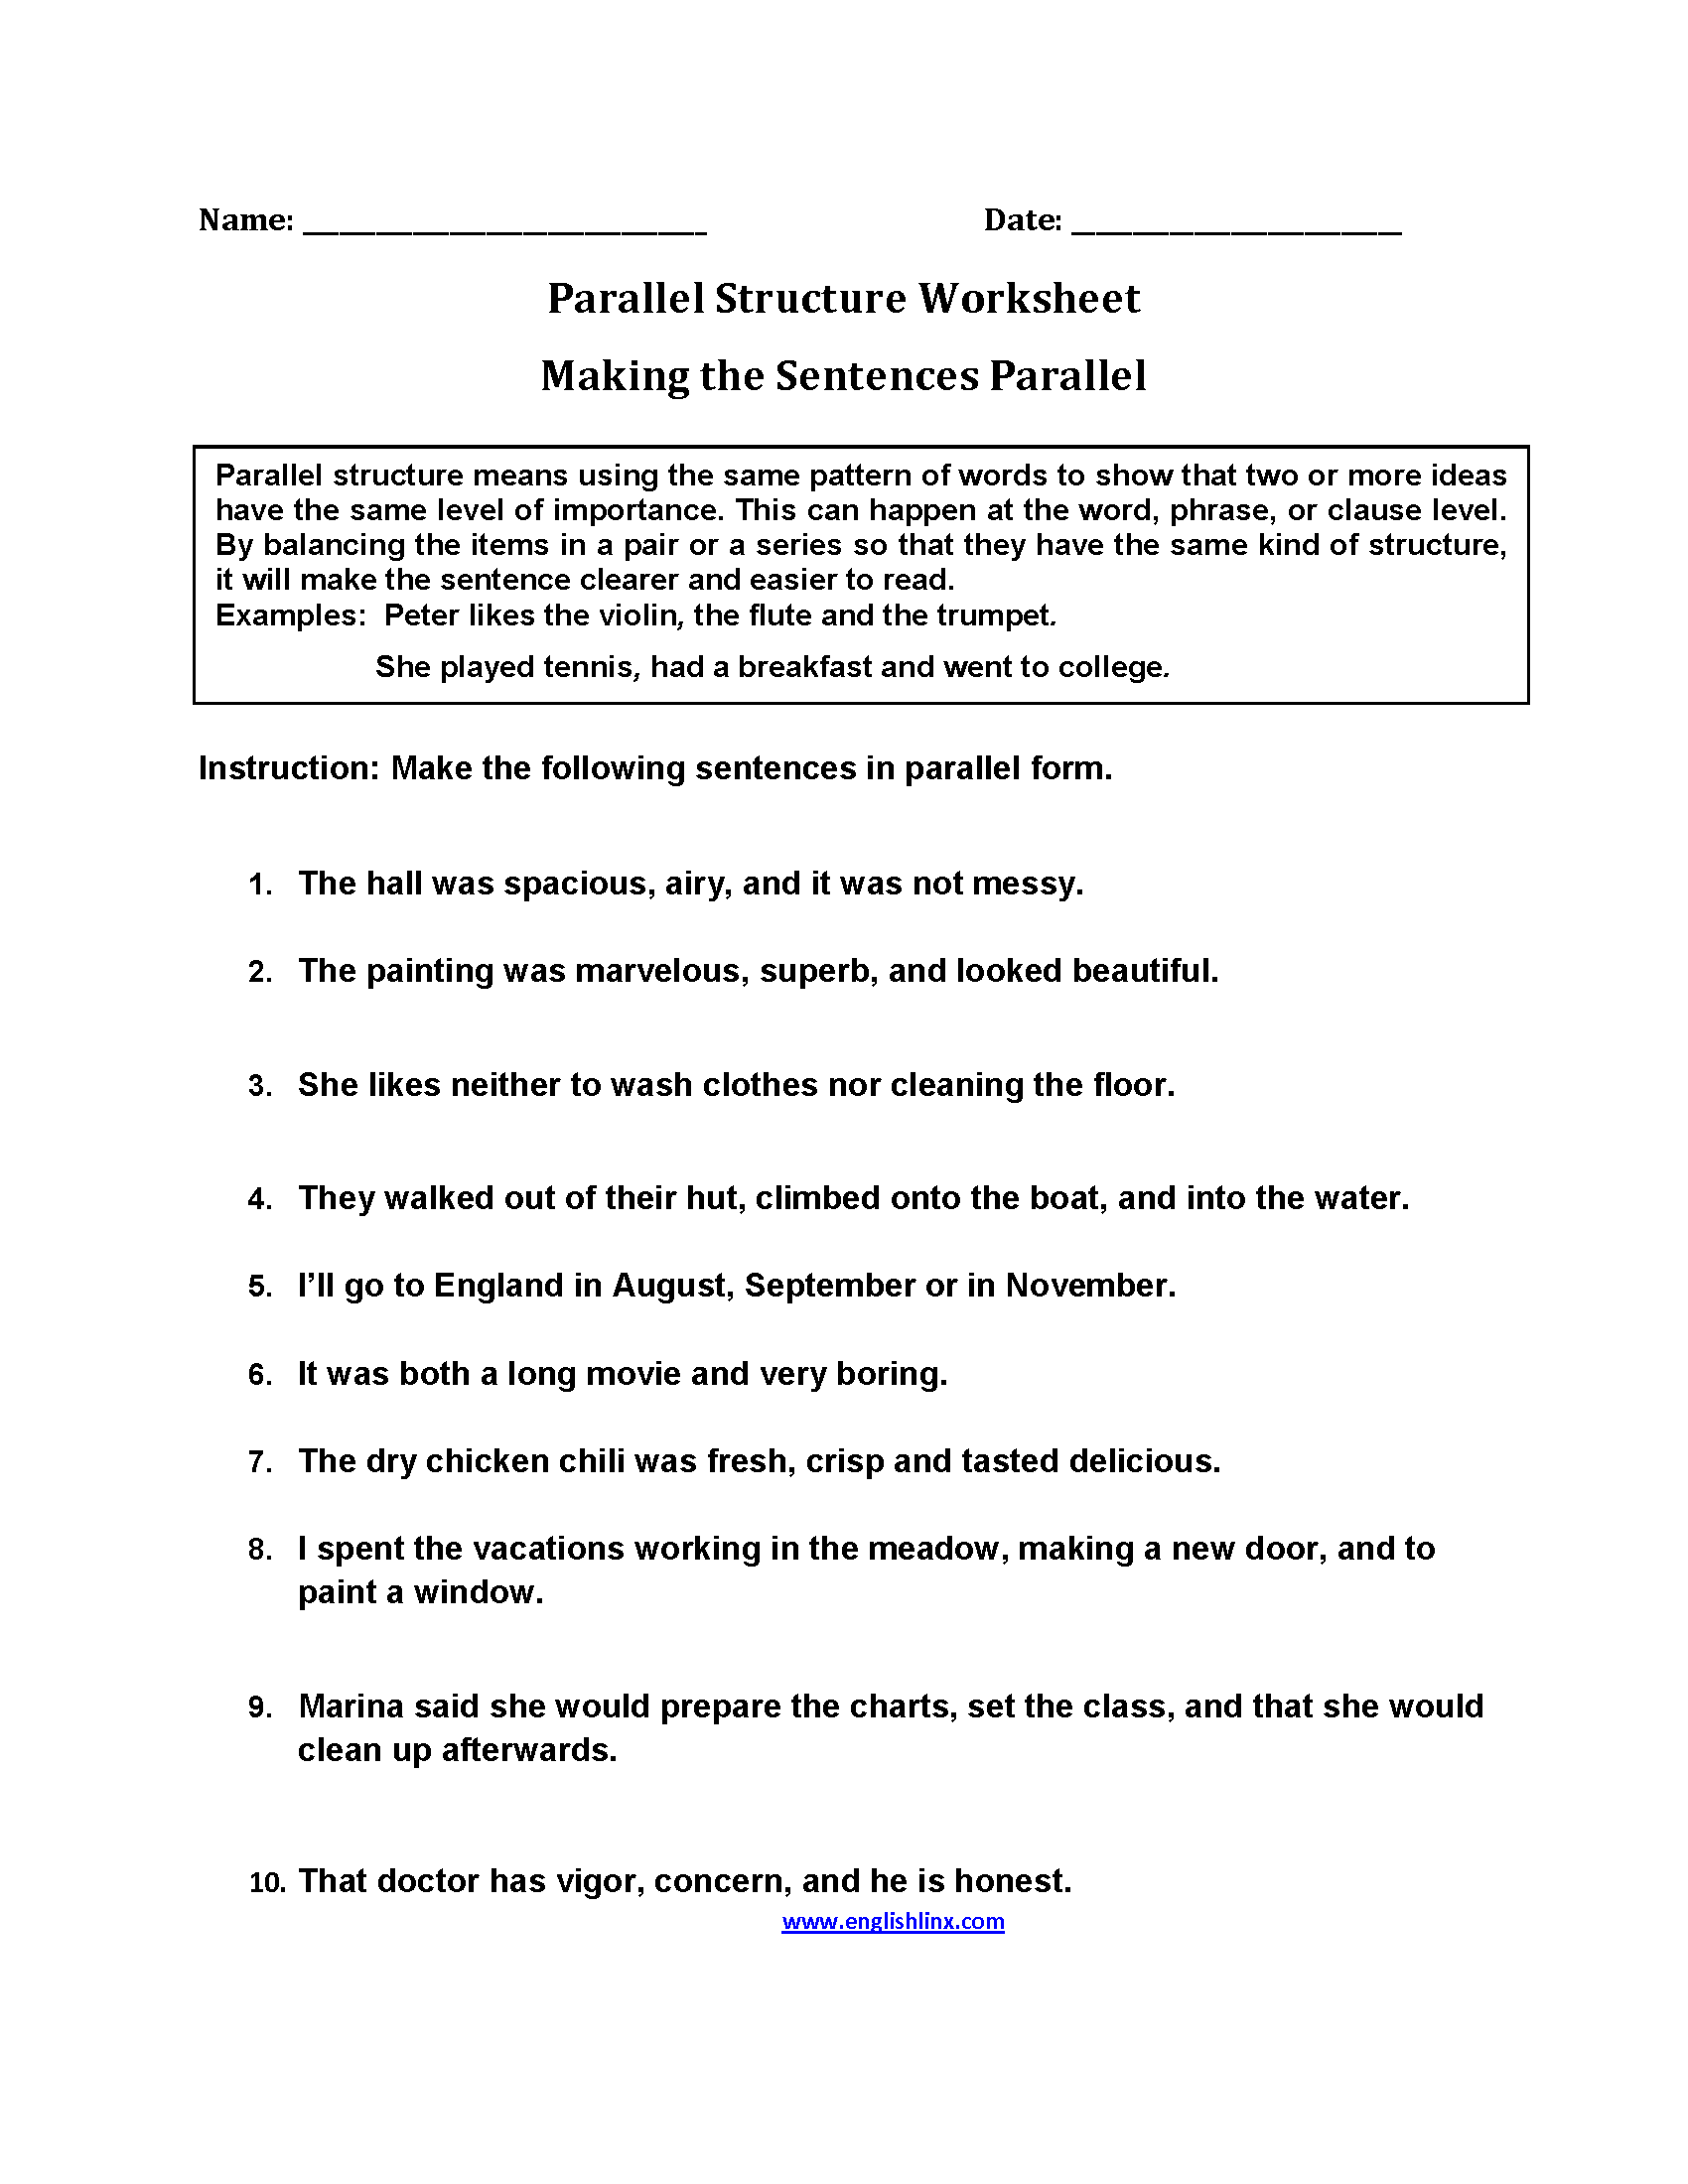 Parallel Structure Worksheets | Making Sentences Parallel ...